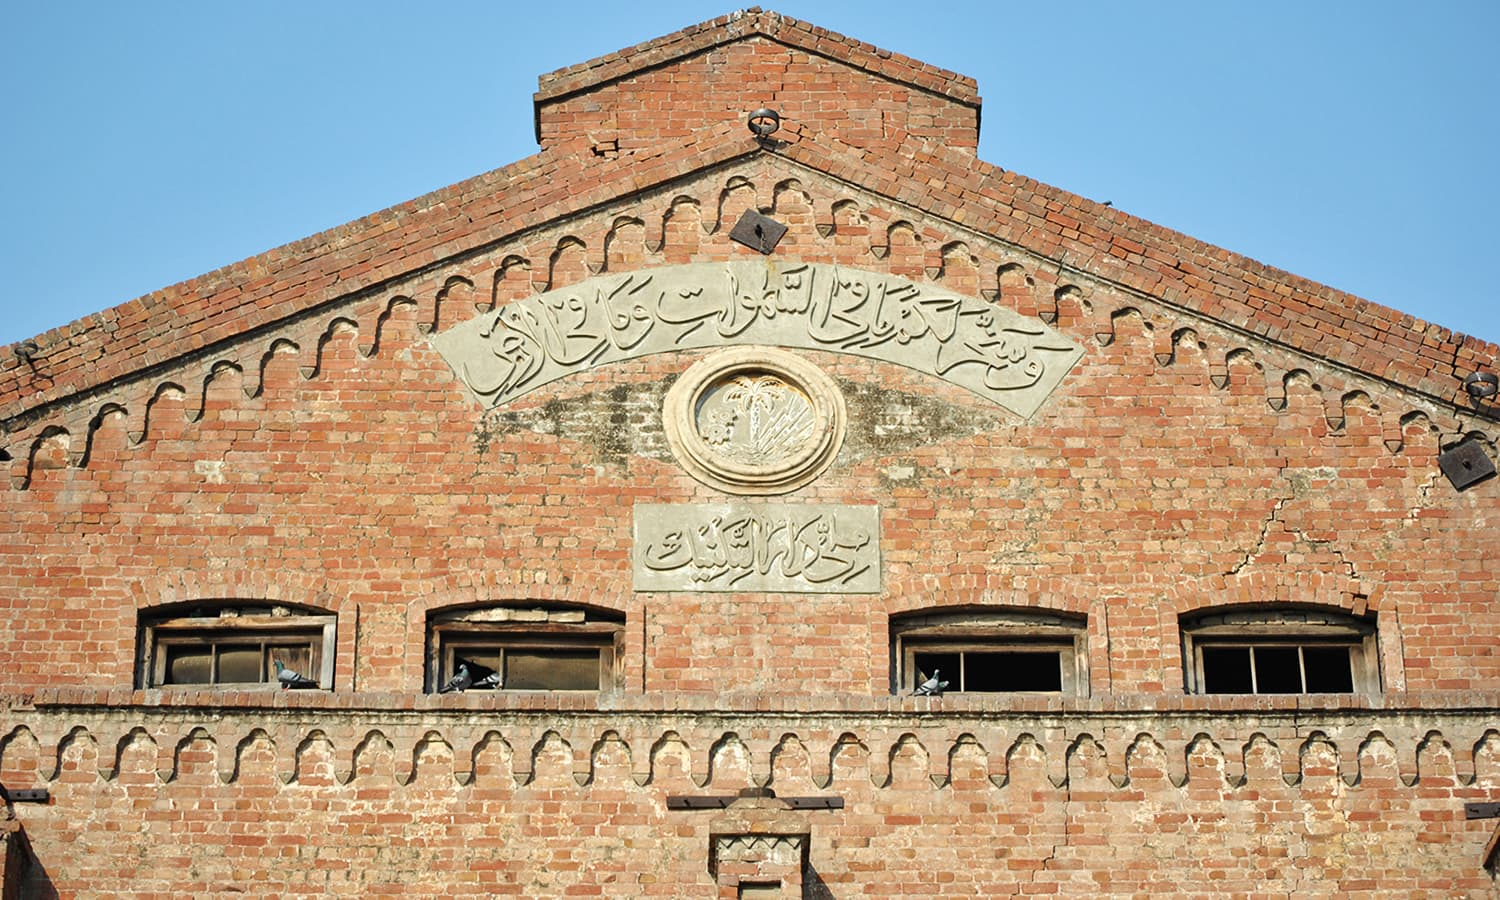 The upper plaque is inscribed with a Quranic verse. The lower one reads 'National Technical Institute' (The hall was used for technical education after the partition).